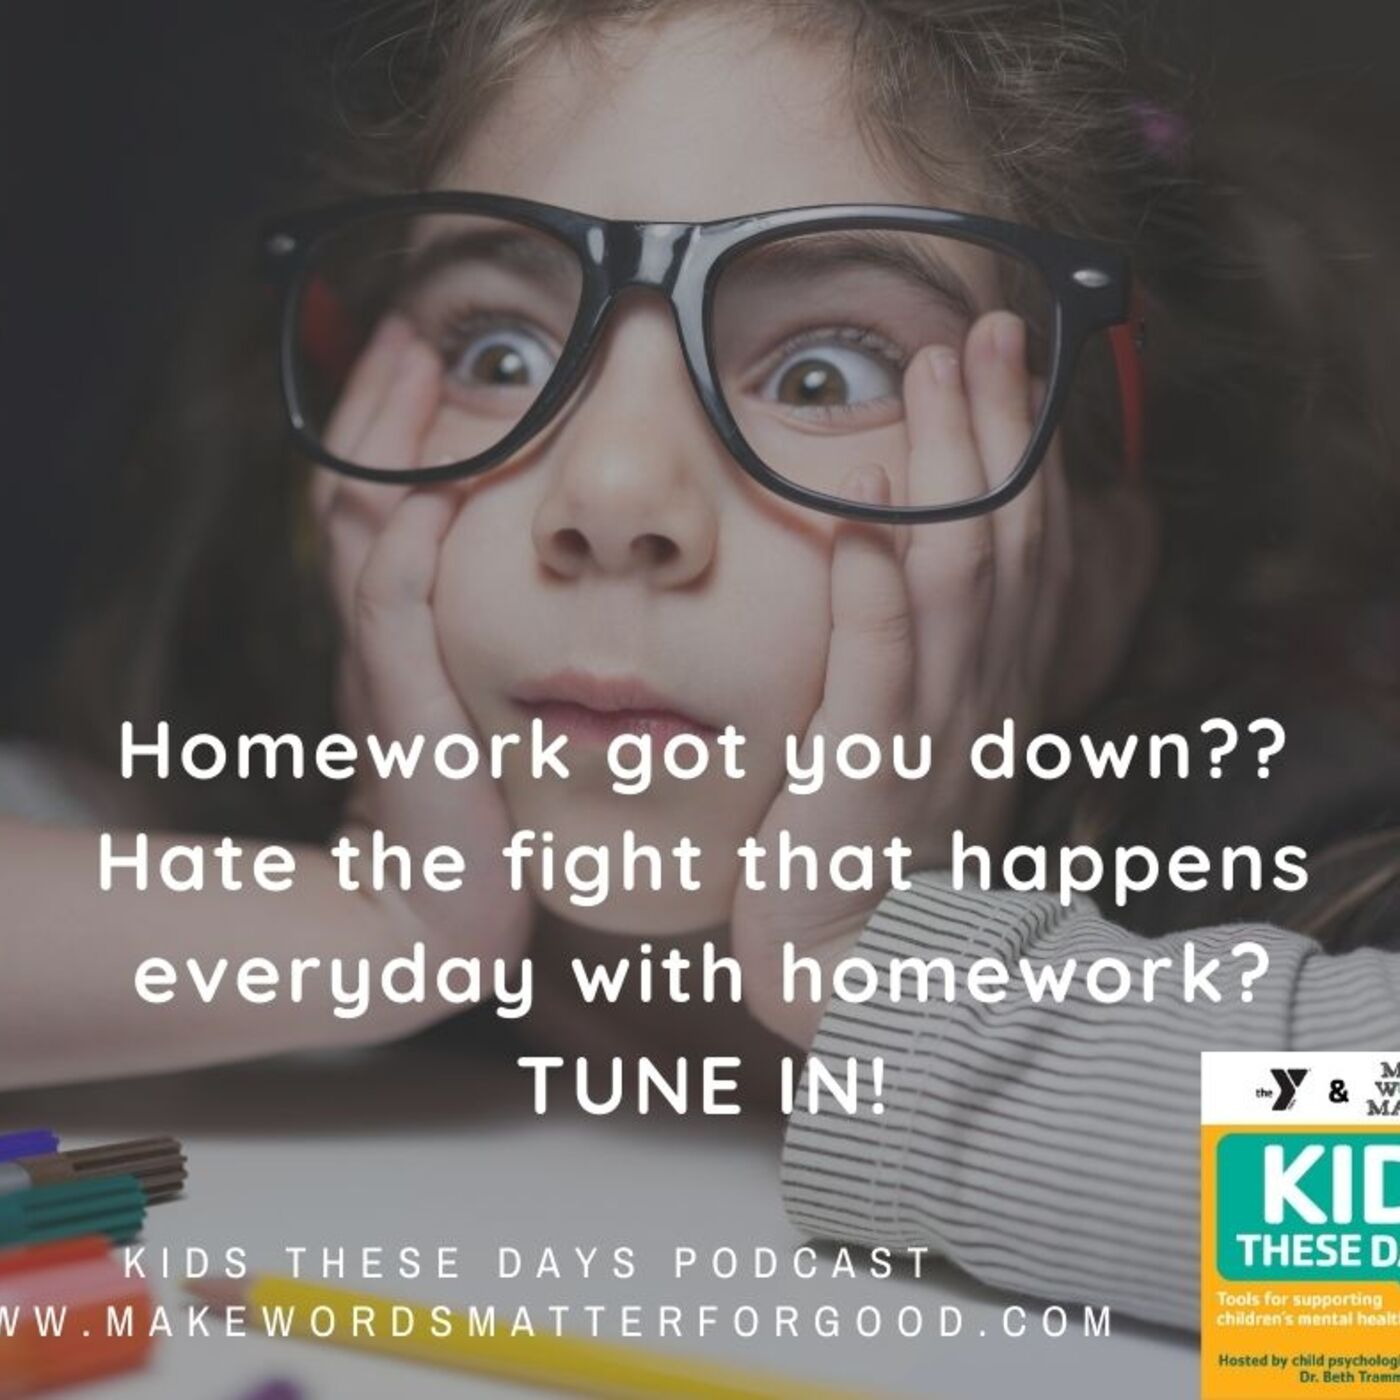 S2E5: The 3 BEST homework tips from TWO child therapists